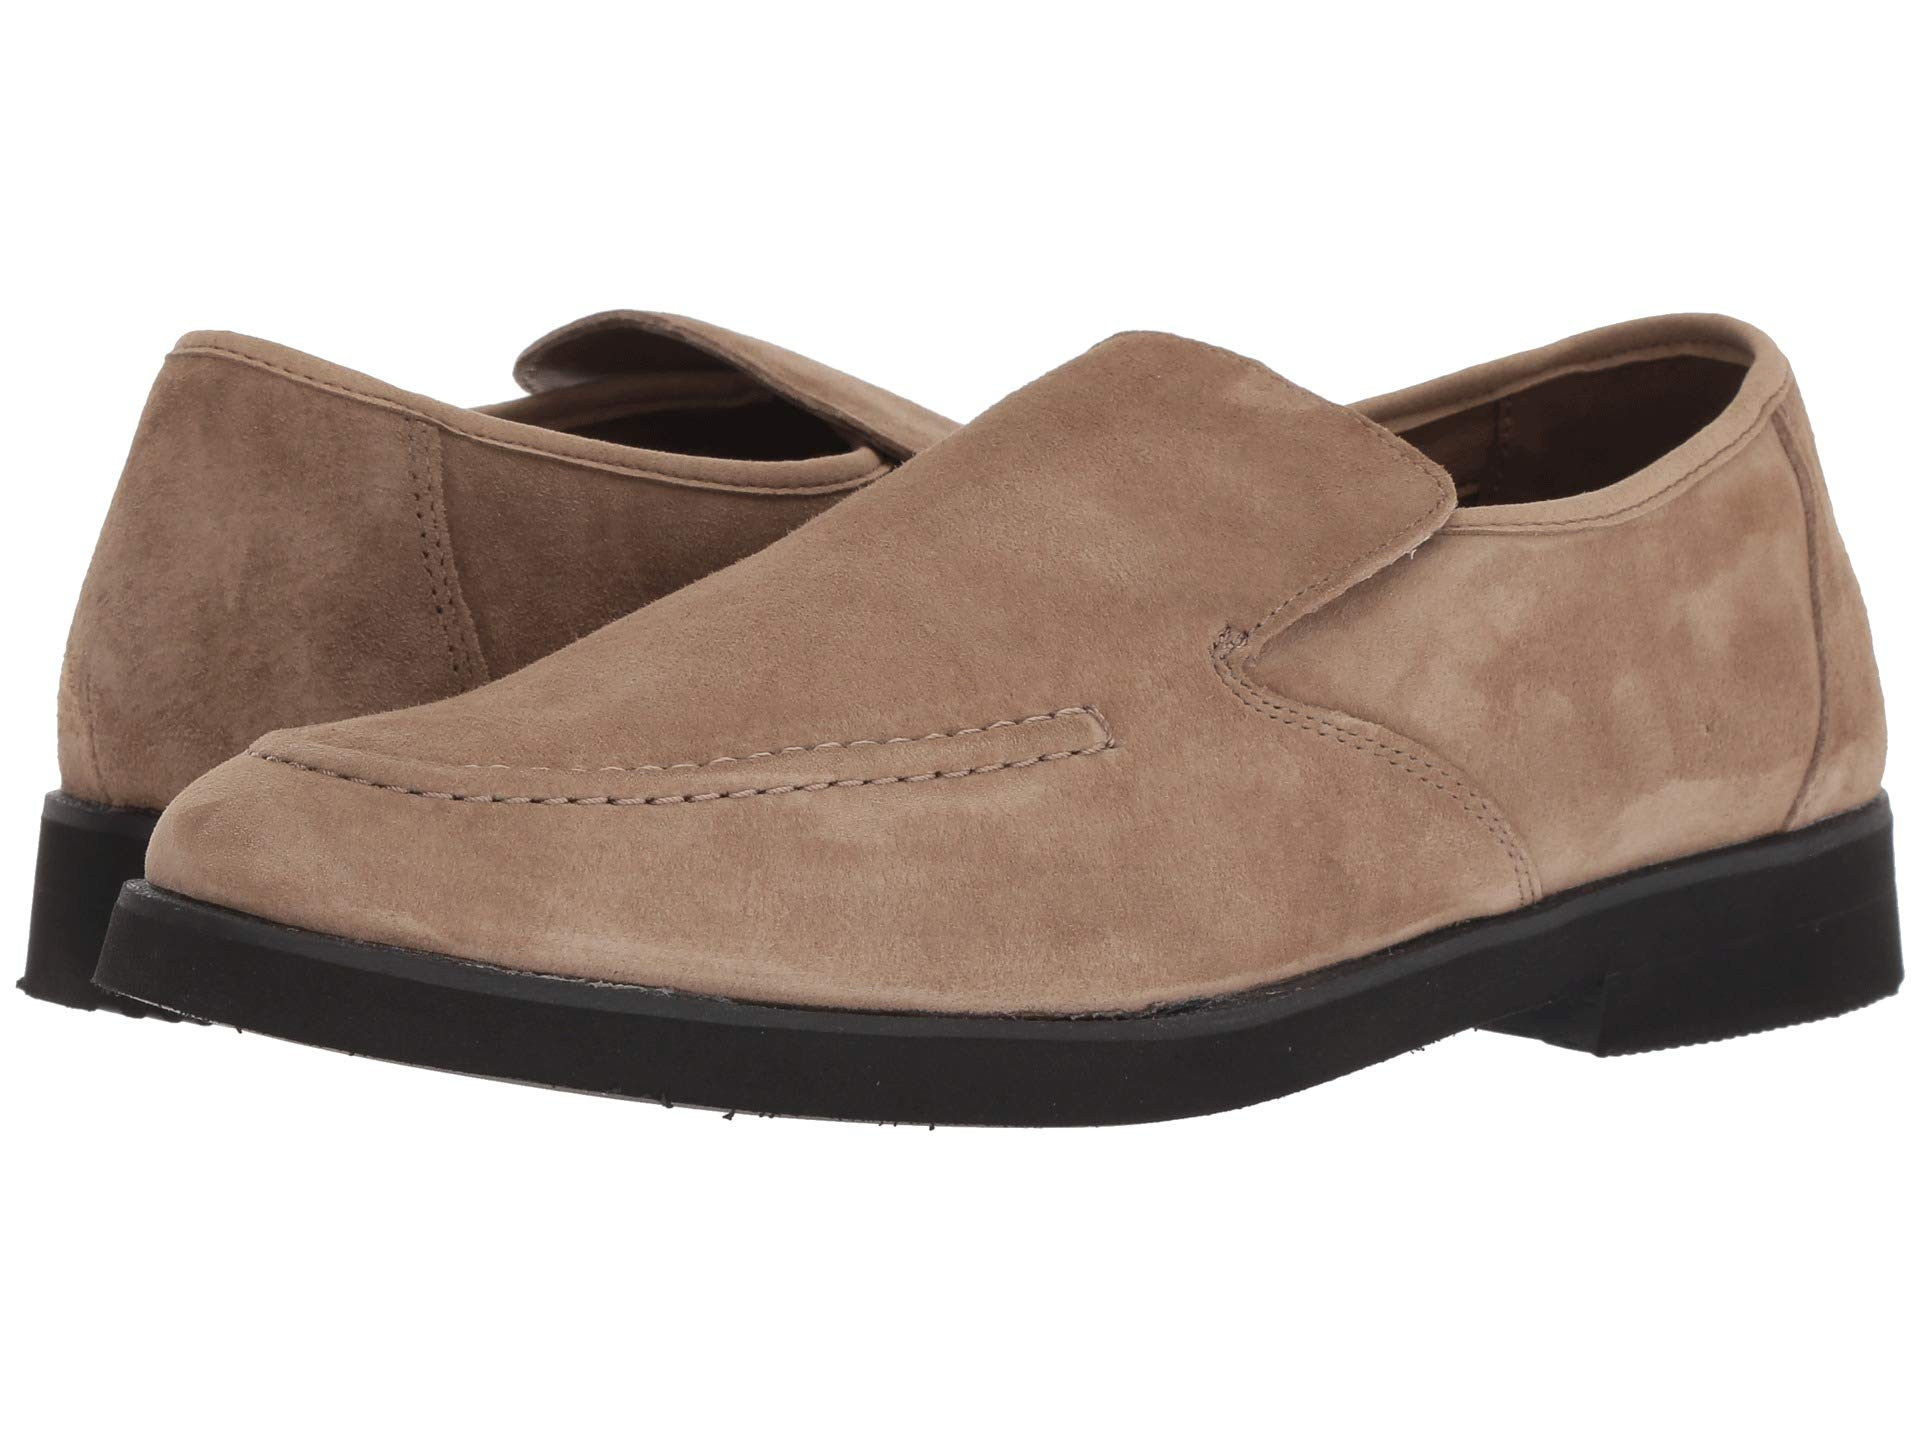 Hush Puppies Hush Puppies Bracco MT Slip-On